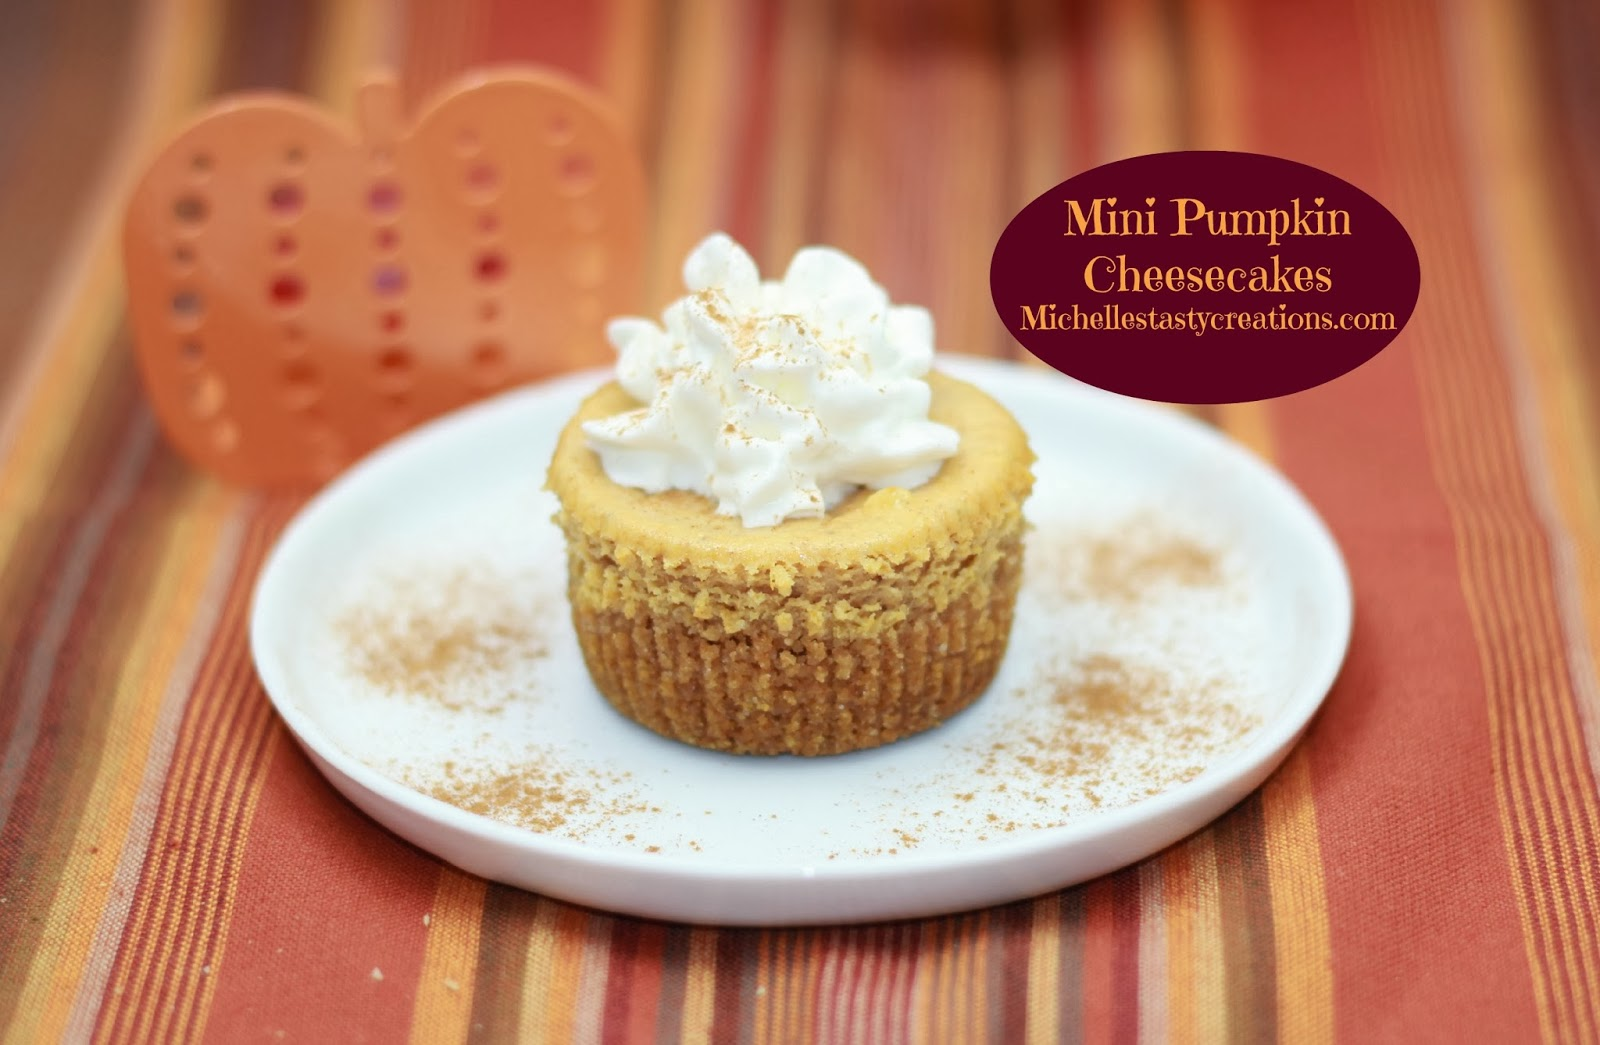 Mini Pumpkin Cheesecake Recipe Mini pumpkin cheesecakes